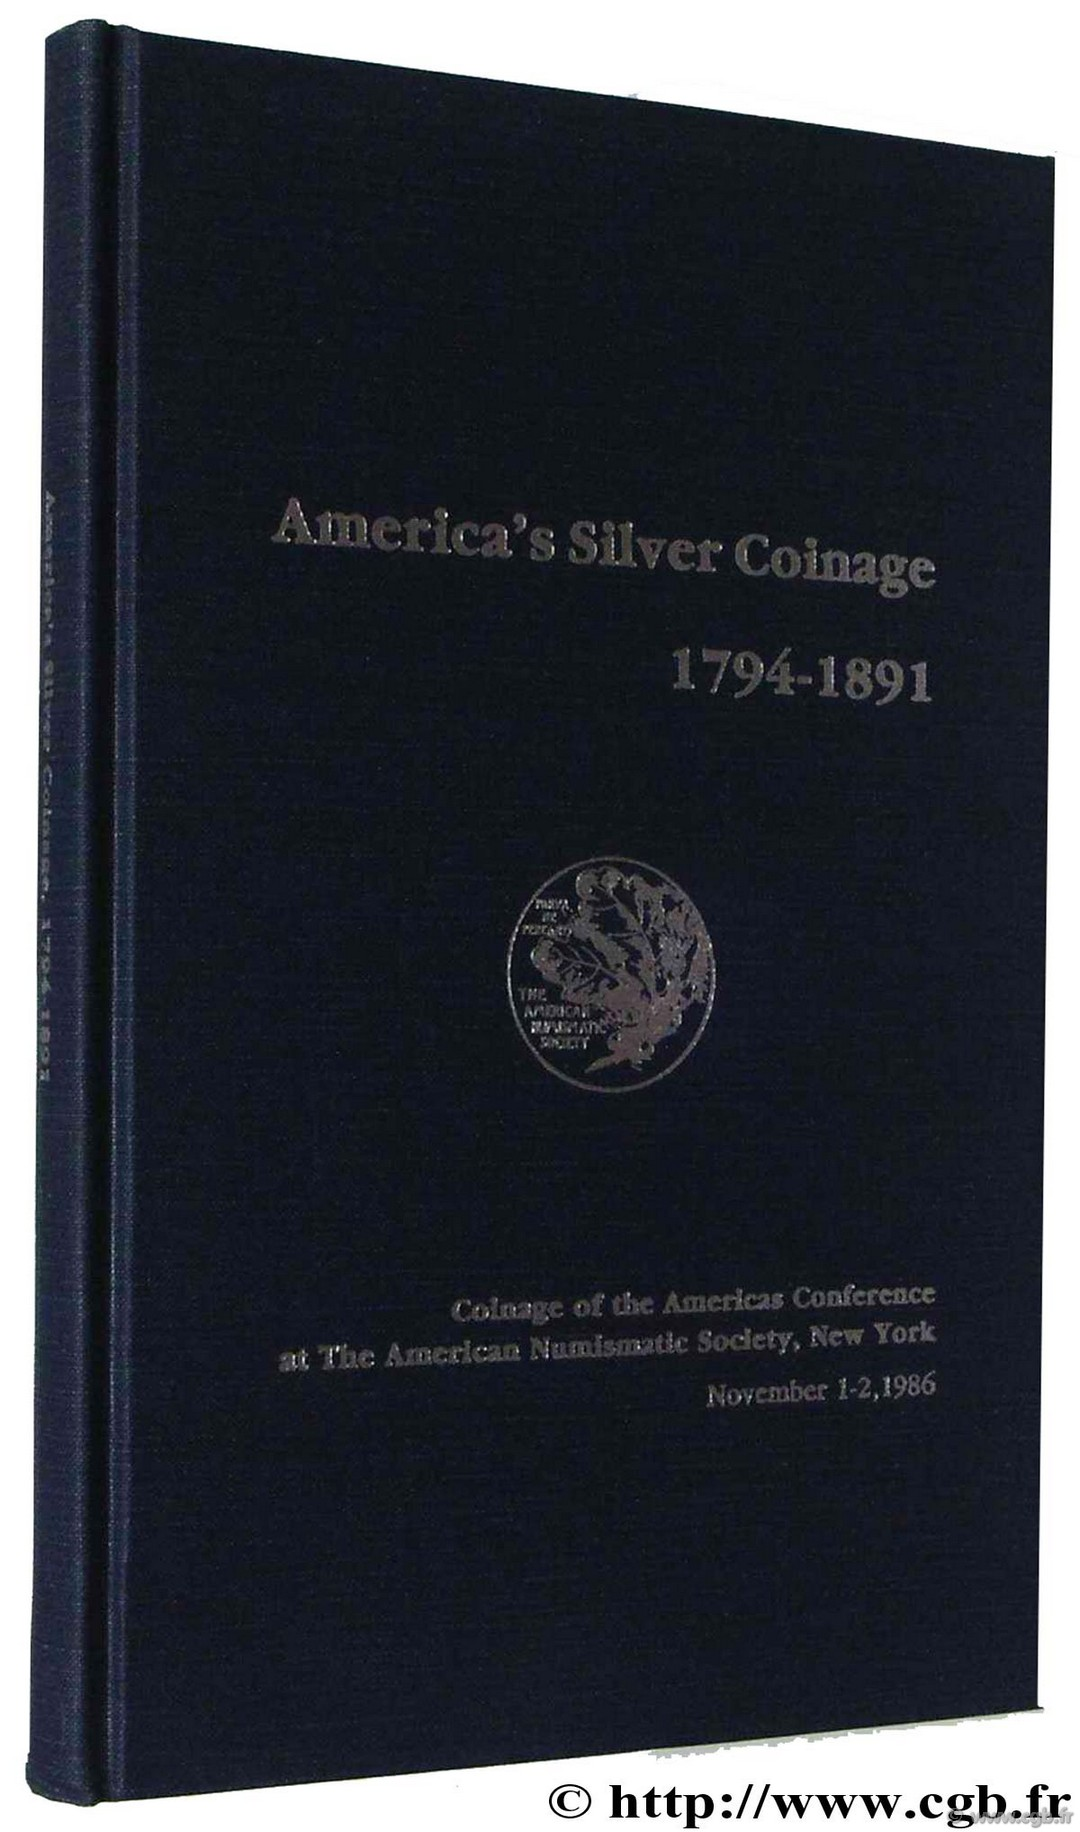 América s Silver coinage 1794-1891, coinage of the americas conference at American Numismatic Society, New York November 1-2, 1986